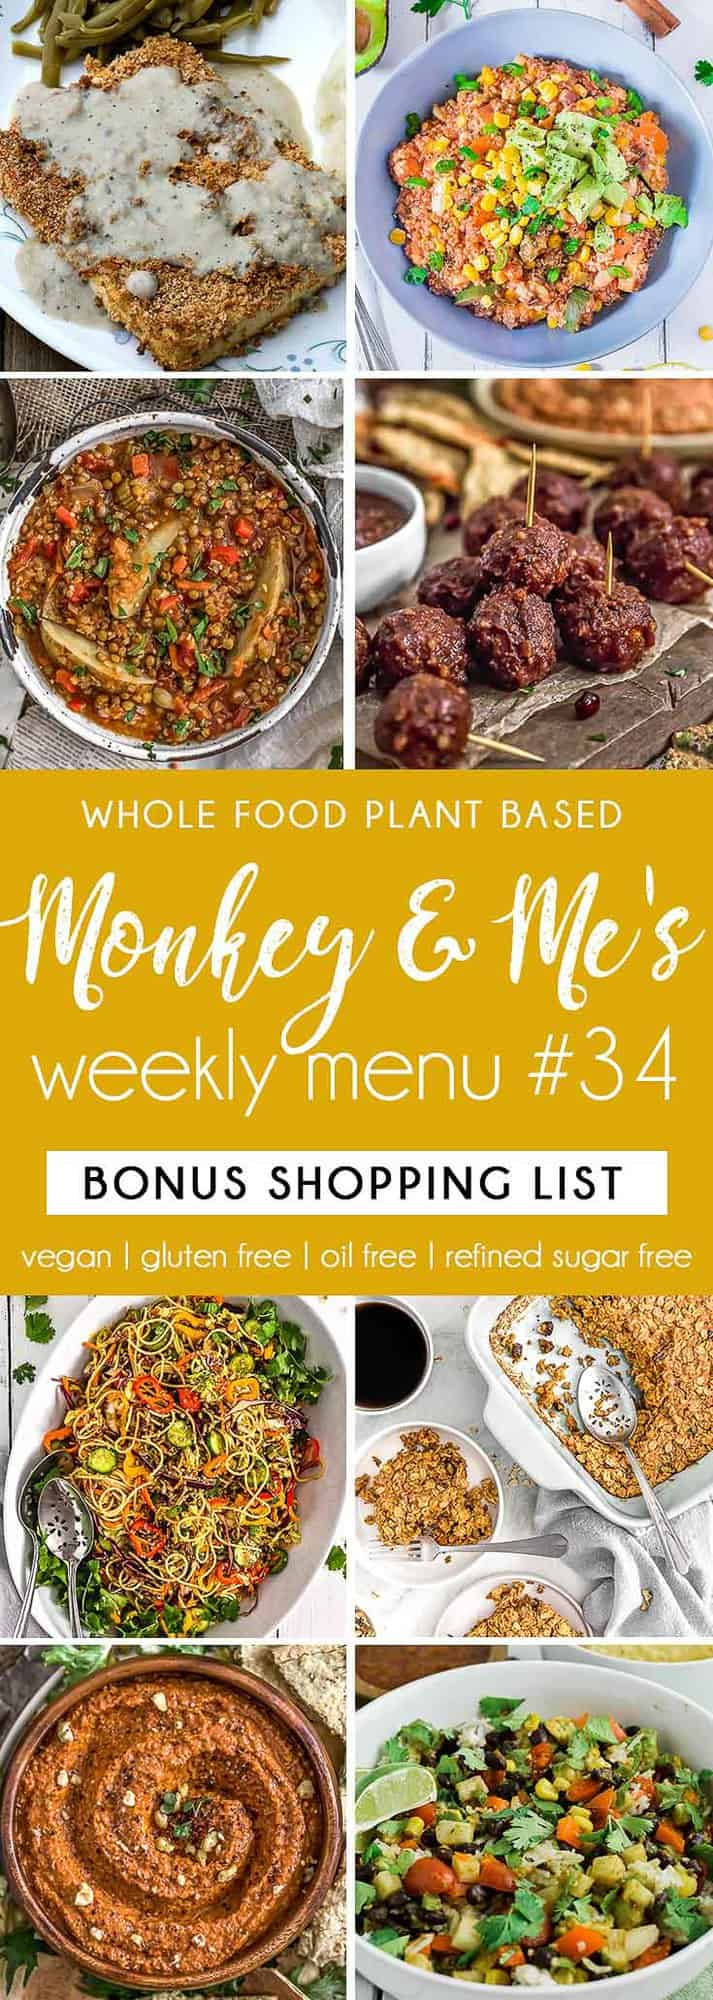 Monkey and Me's Menu 34 featuring 8 recipes